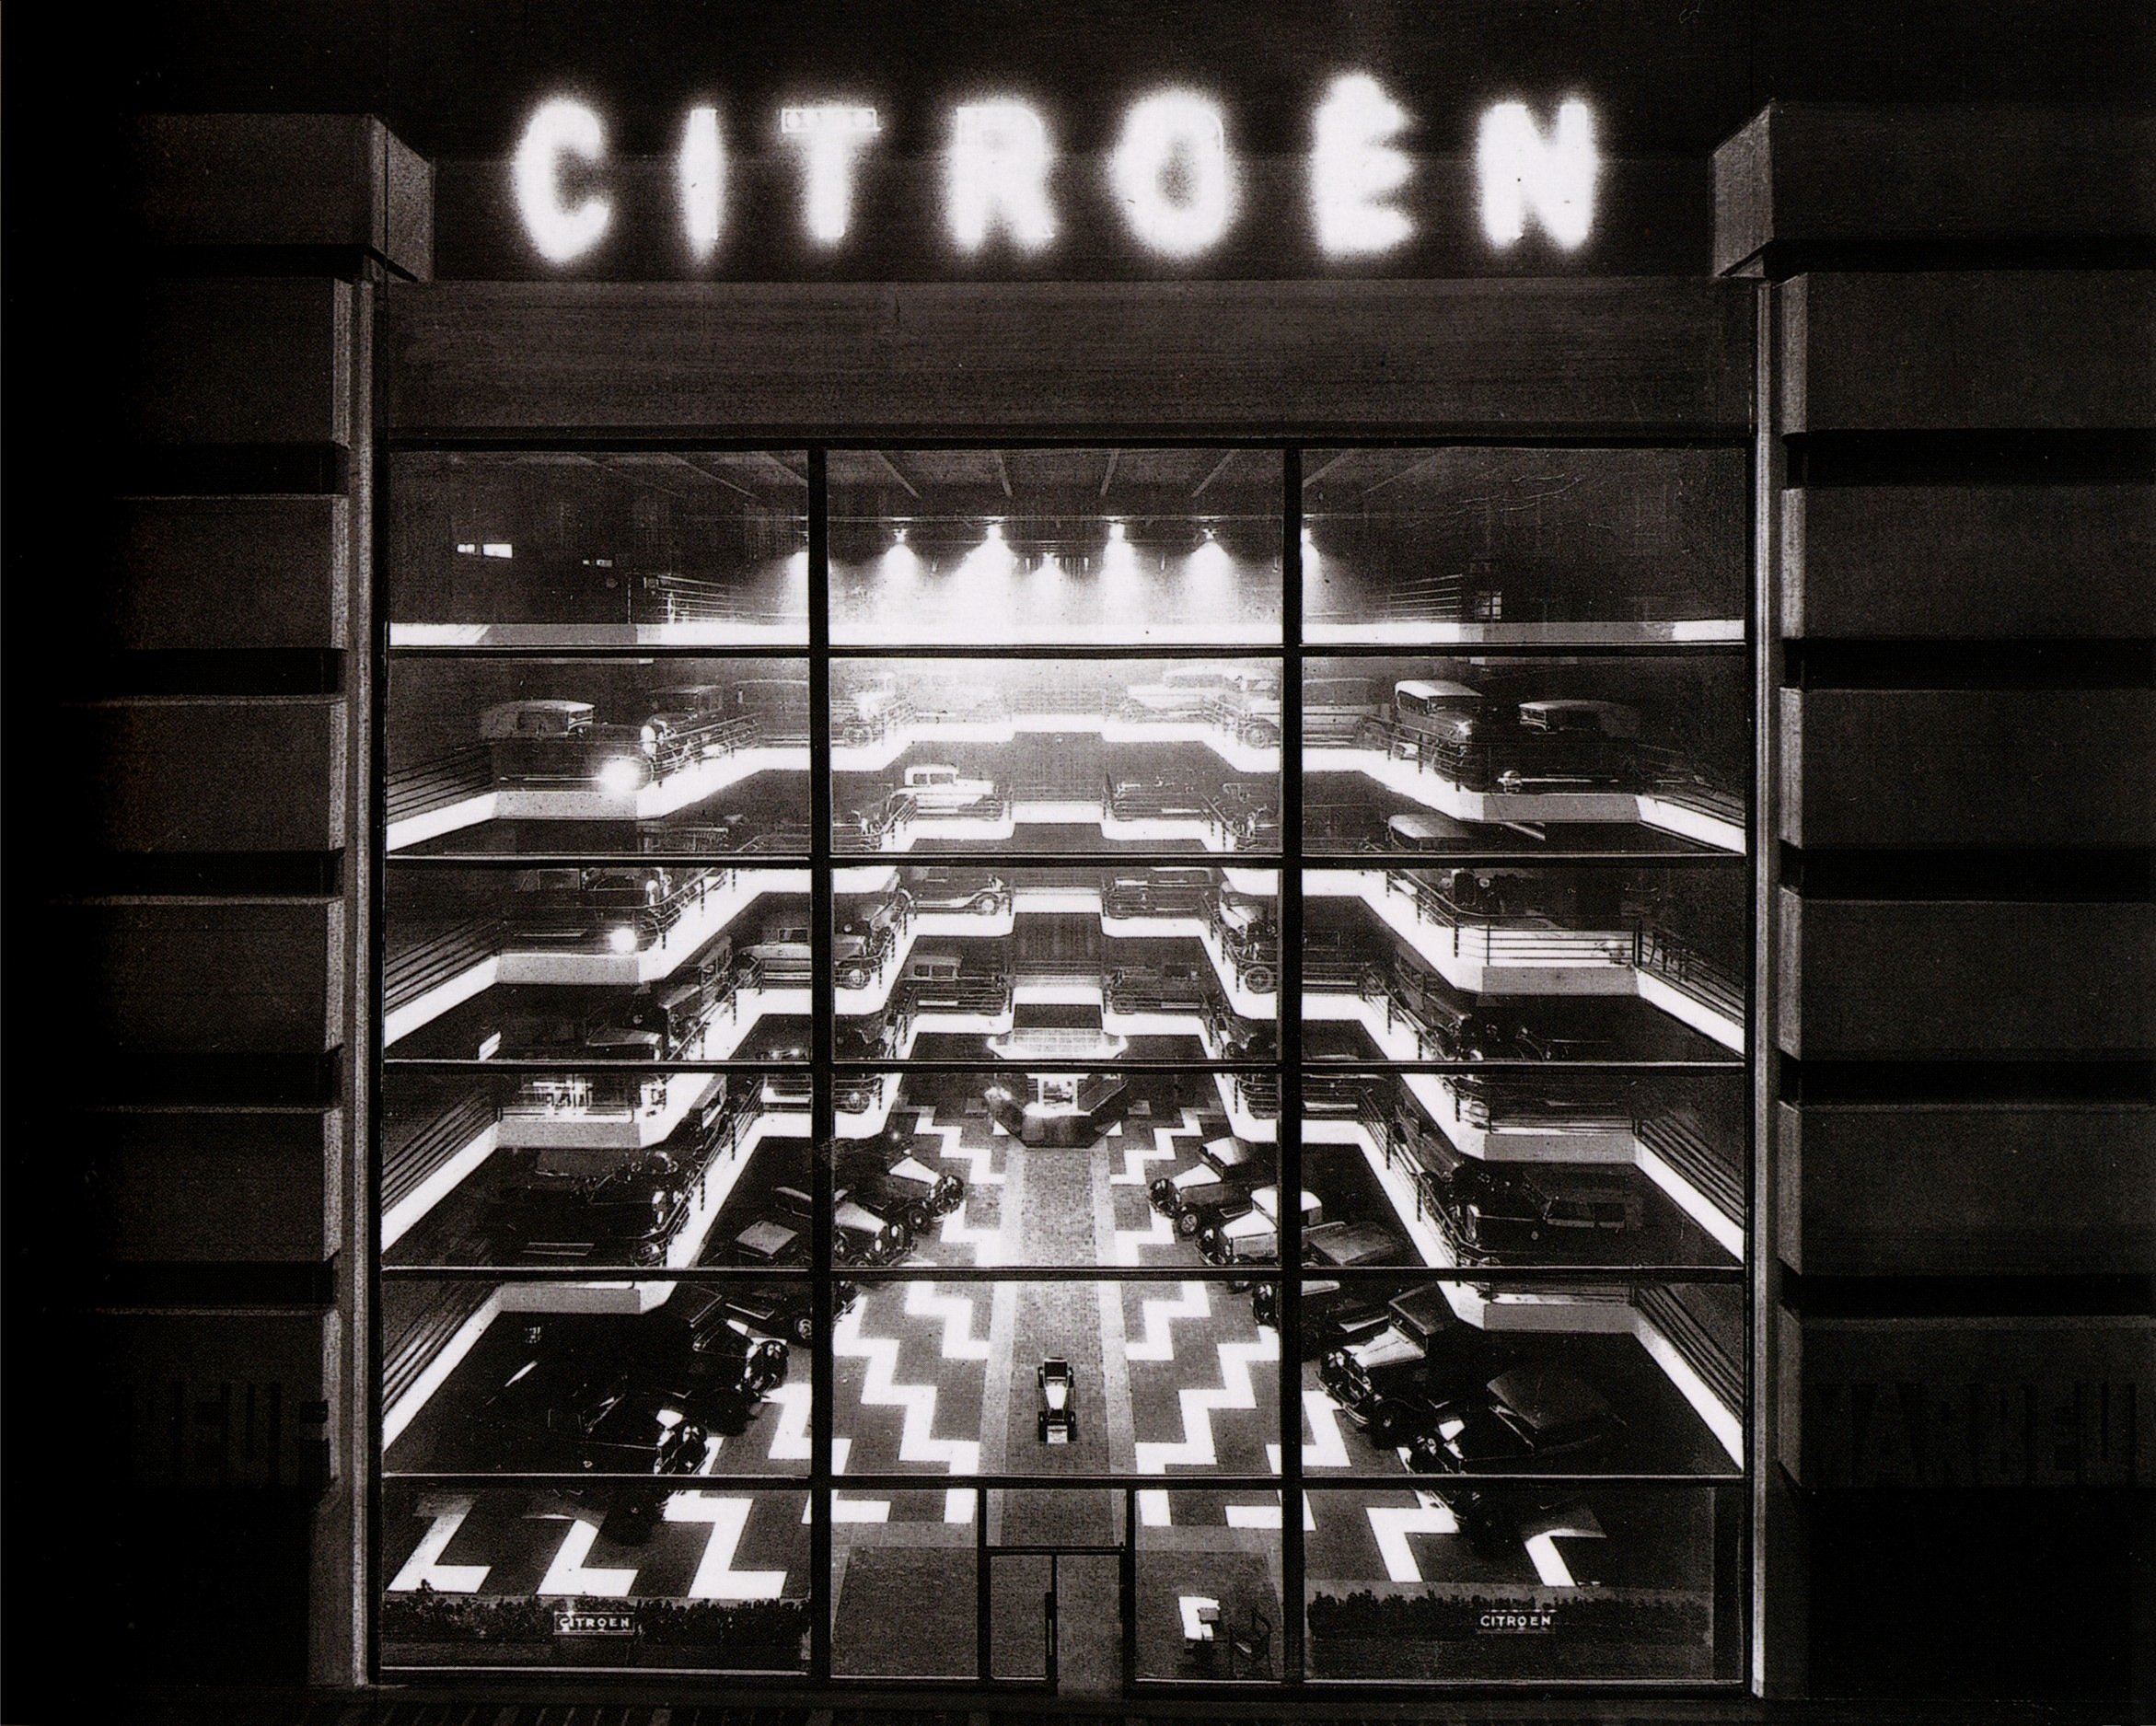 the art of memory le magasin de ventre citro n paris ForGarage Citroen Paris